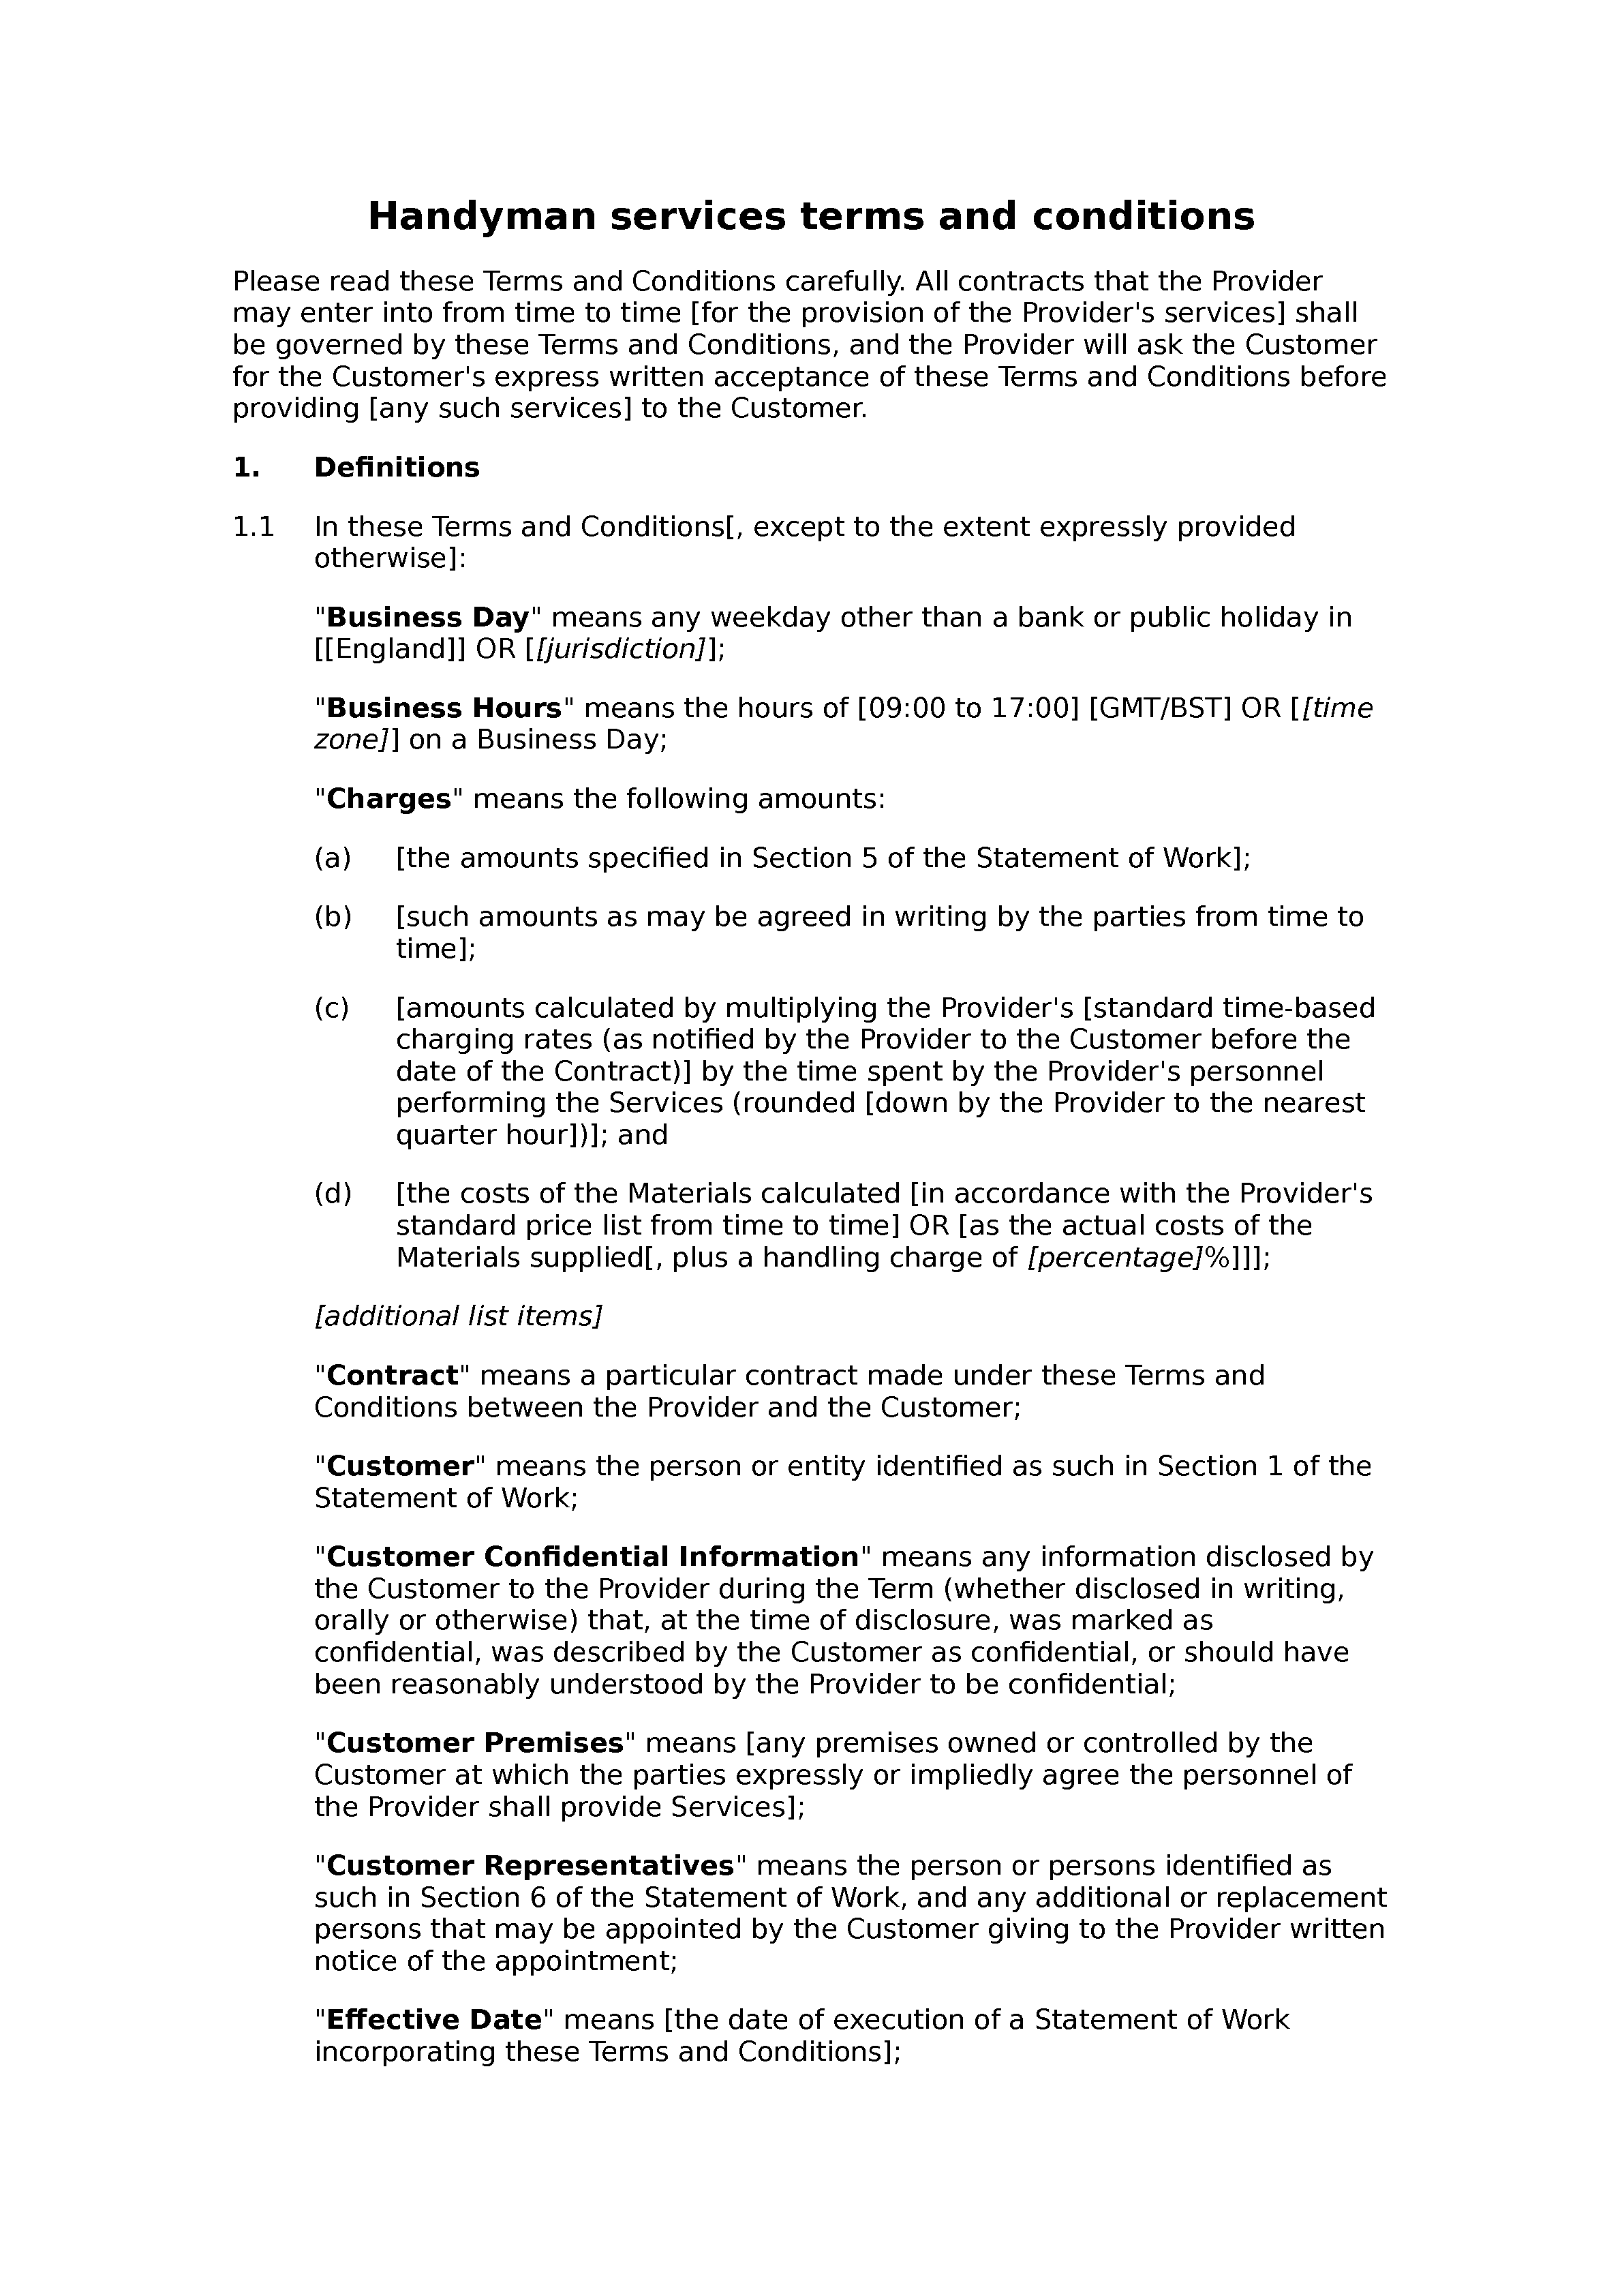 Handyman services terms and conditions docular for Generic terms and conditions template